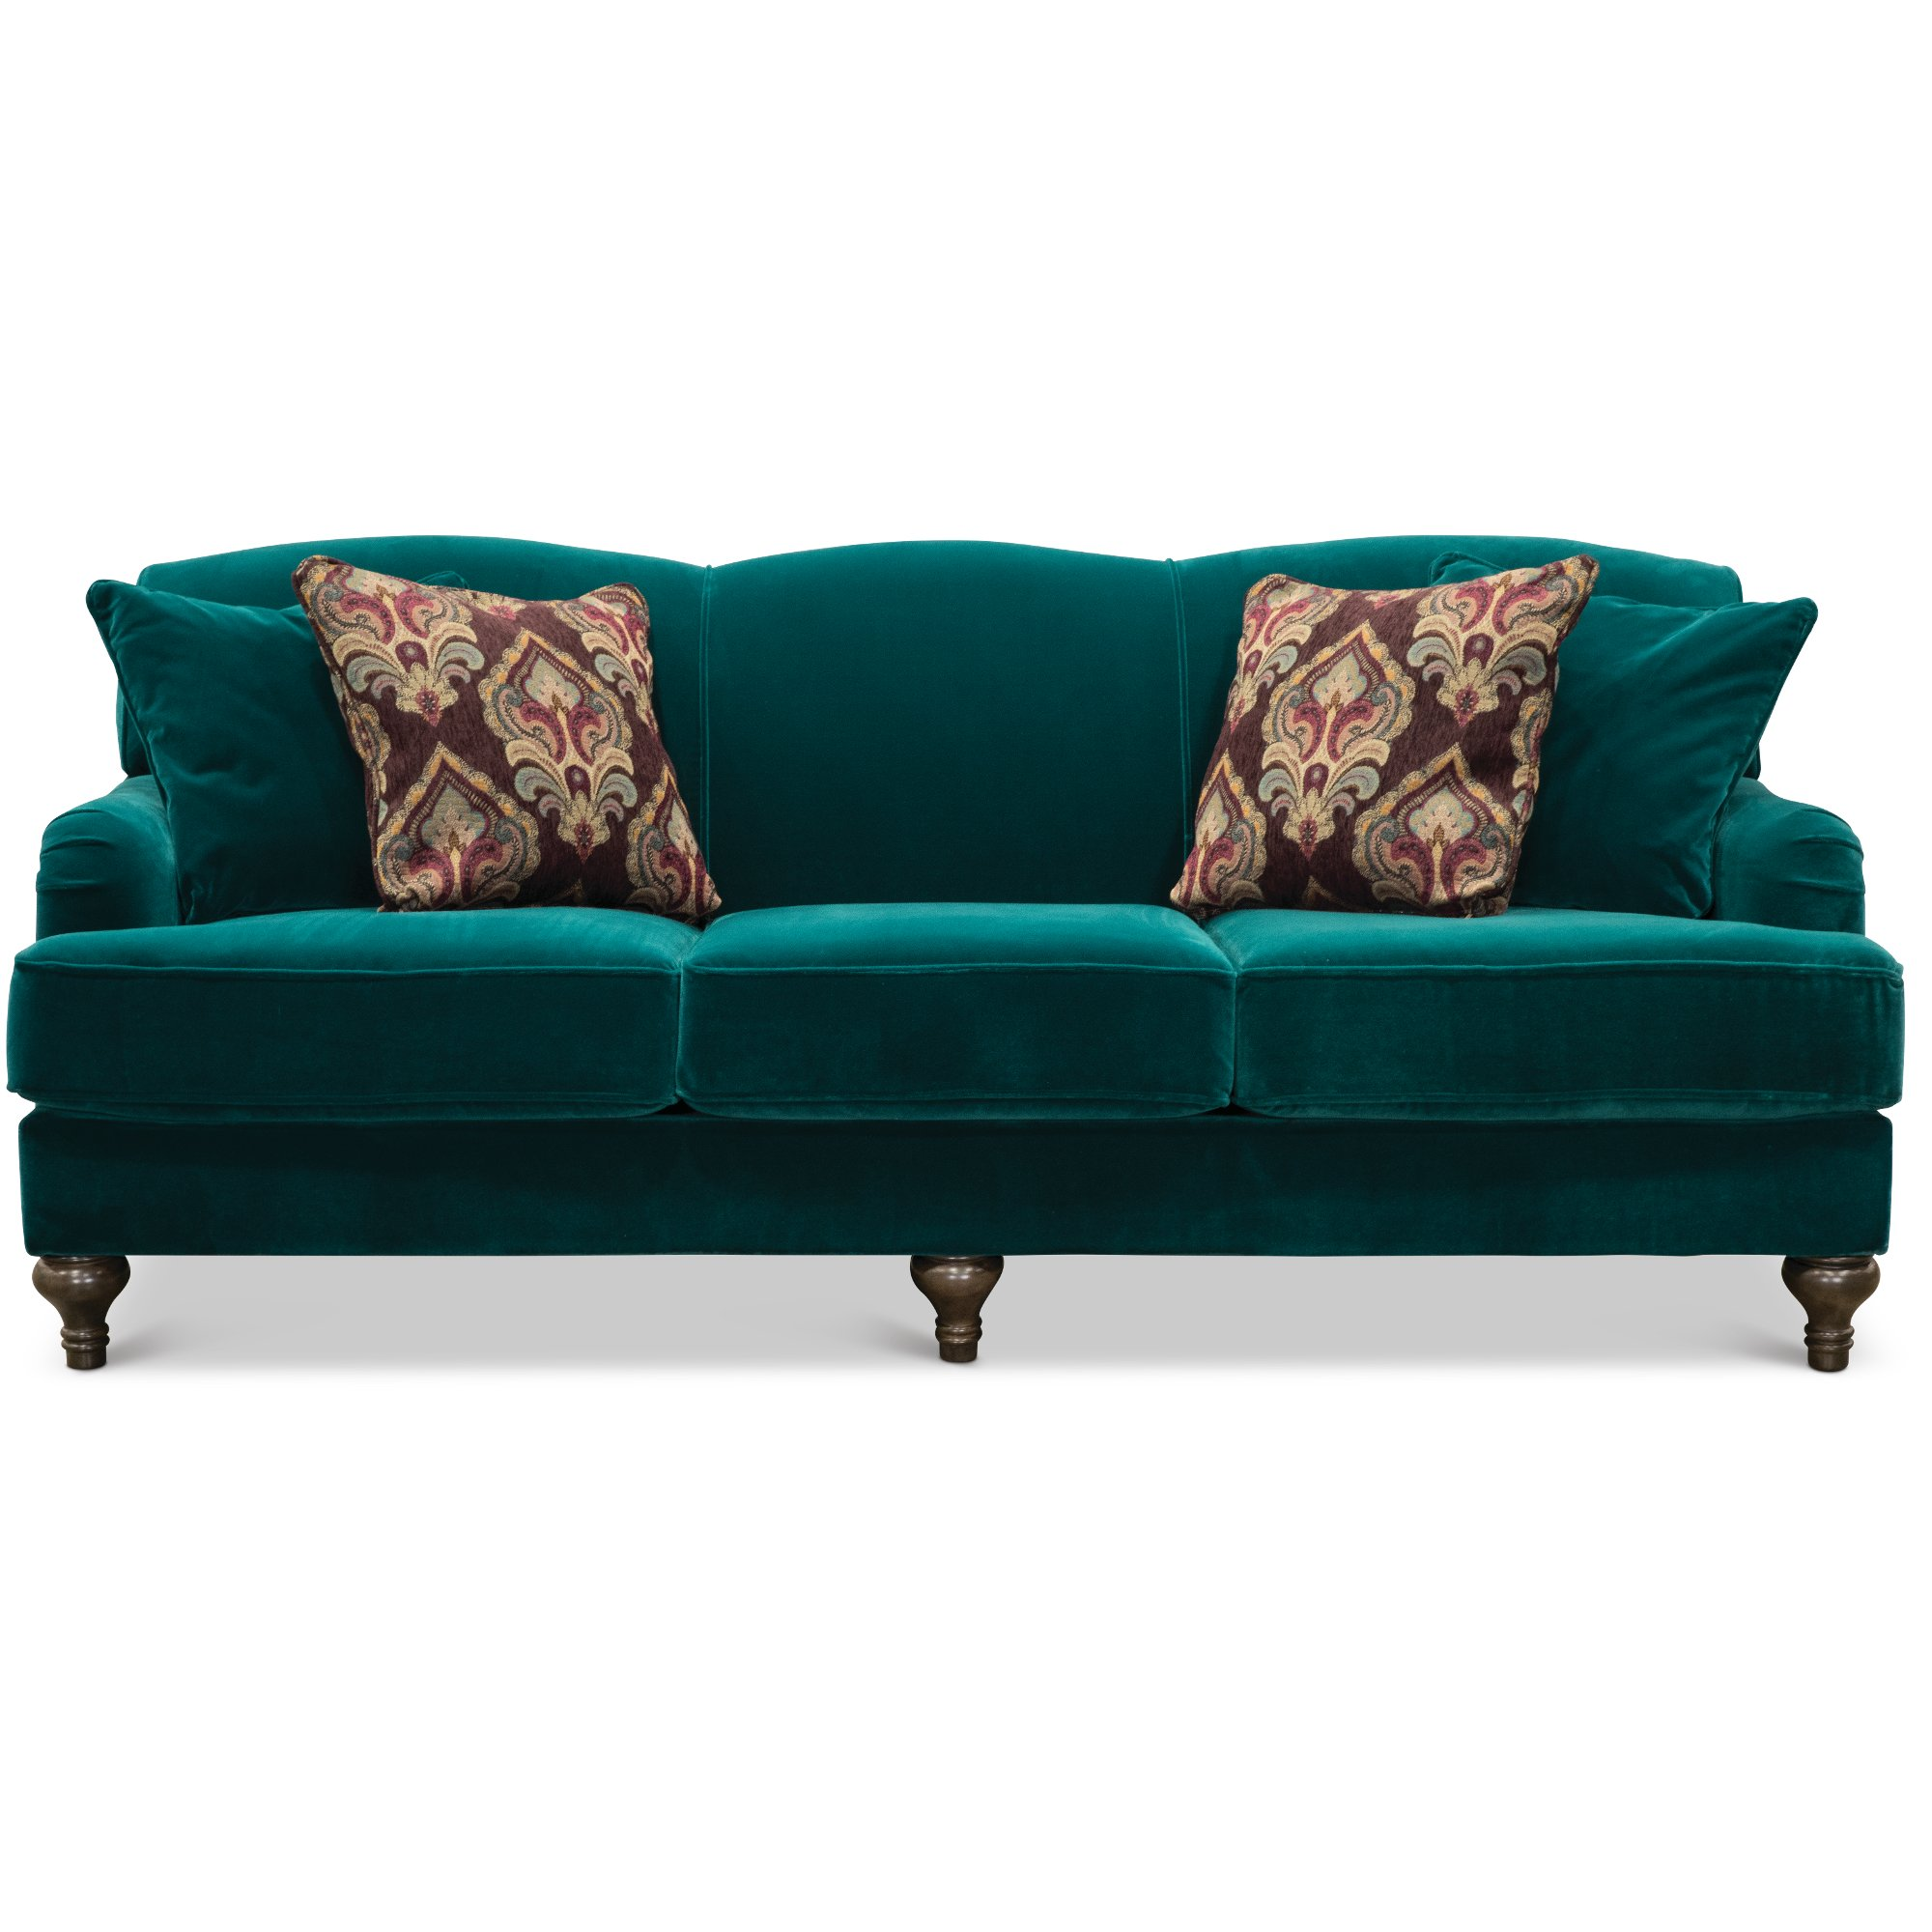 Shop couches and sofas for sale Searching Bauhaus